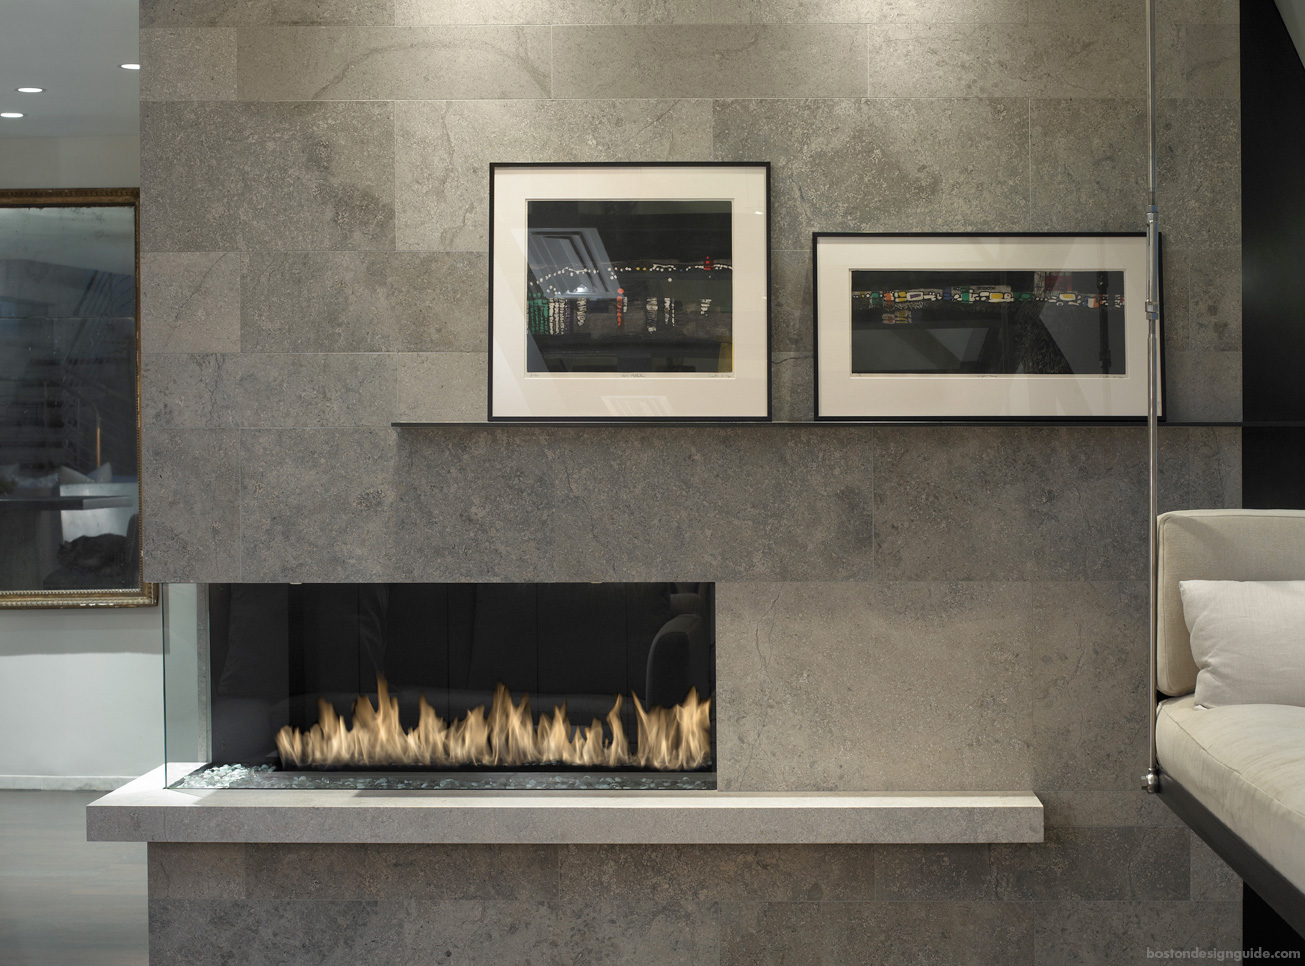 The new classics gorgeous looks in natural stone and tile paris ceramics castile grey limestone fireplace surround and hearth dailygadgetfo Image collections